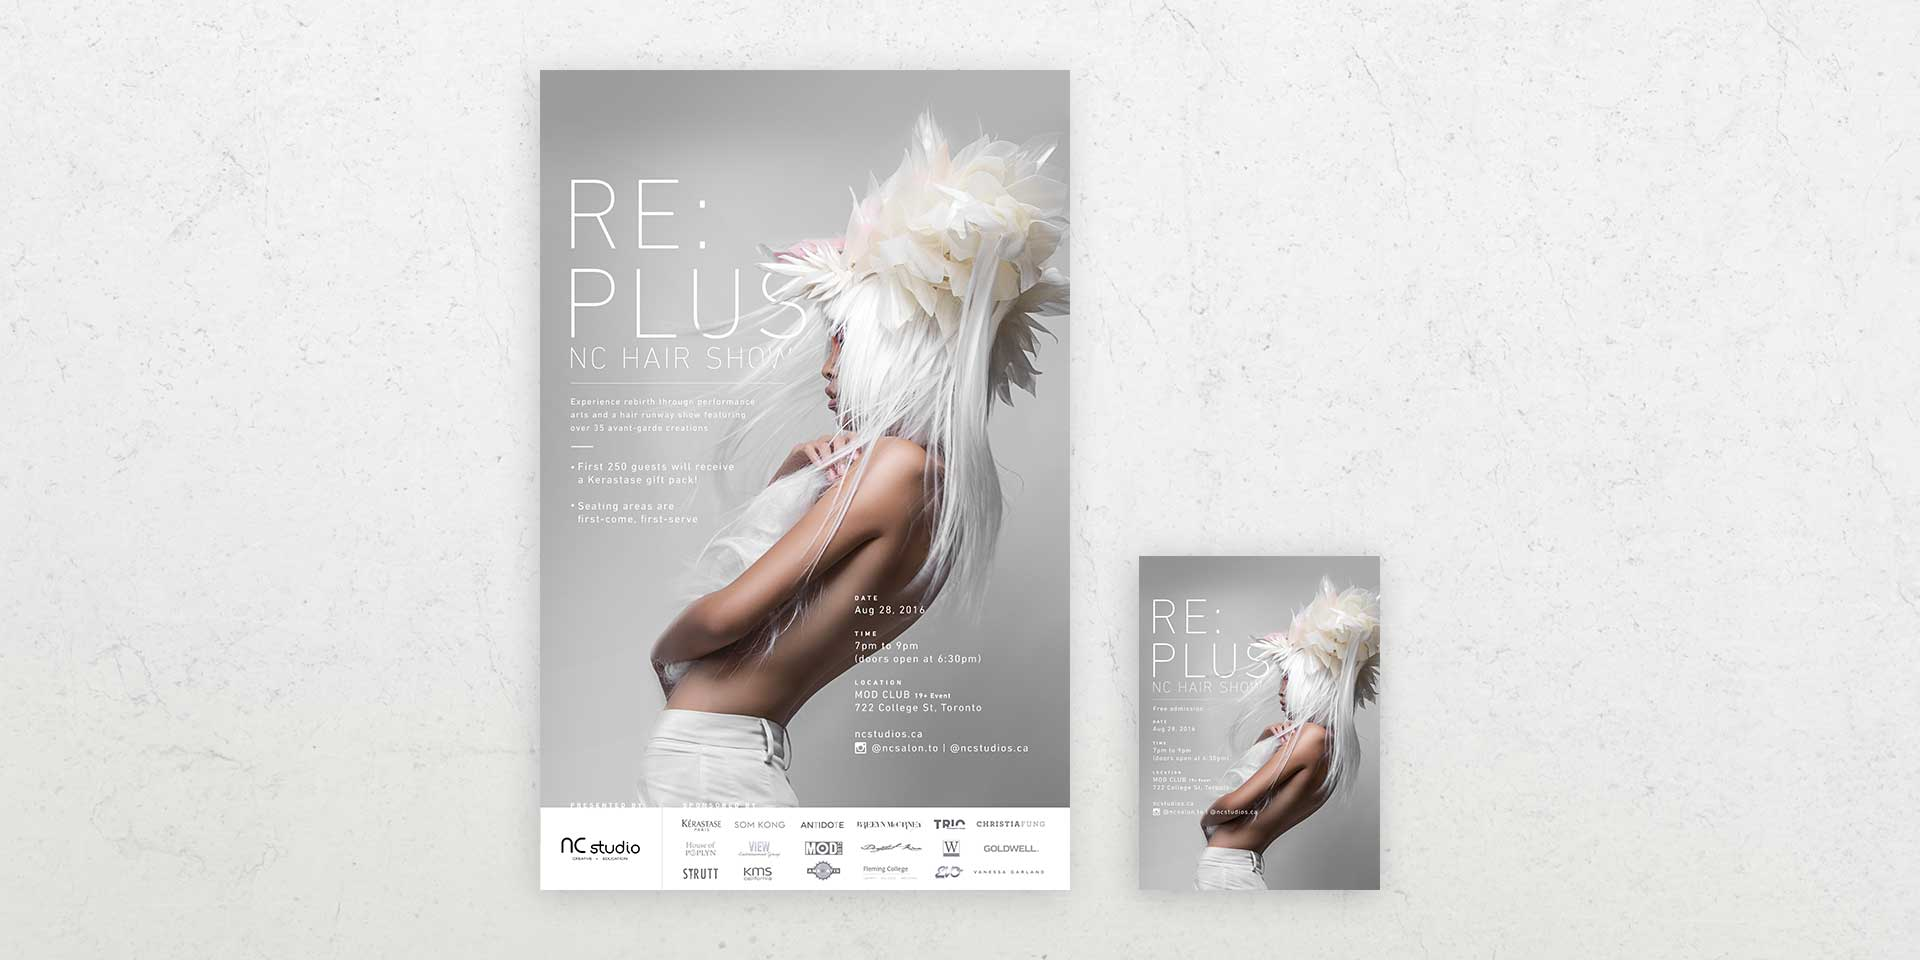 Re Plus poster and flyer hand out